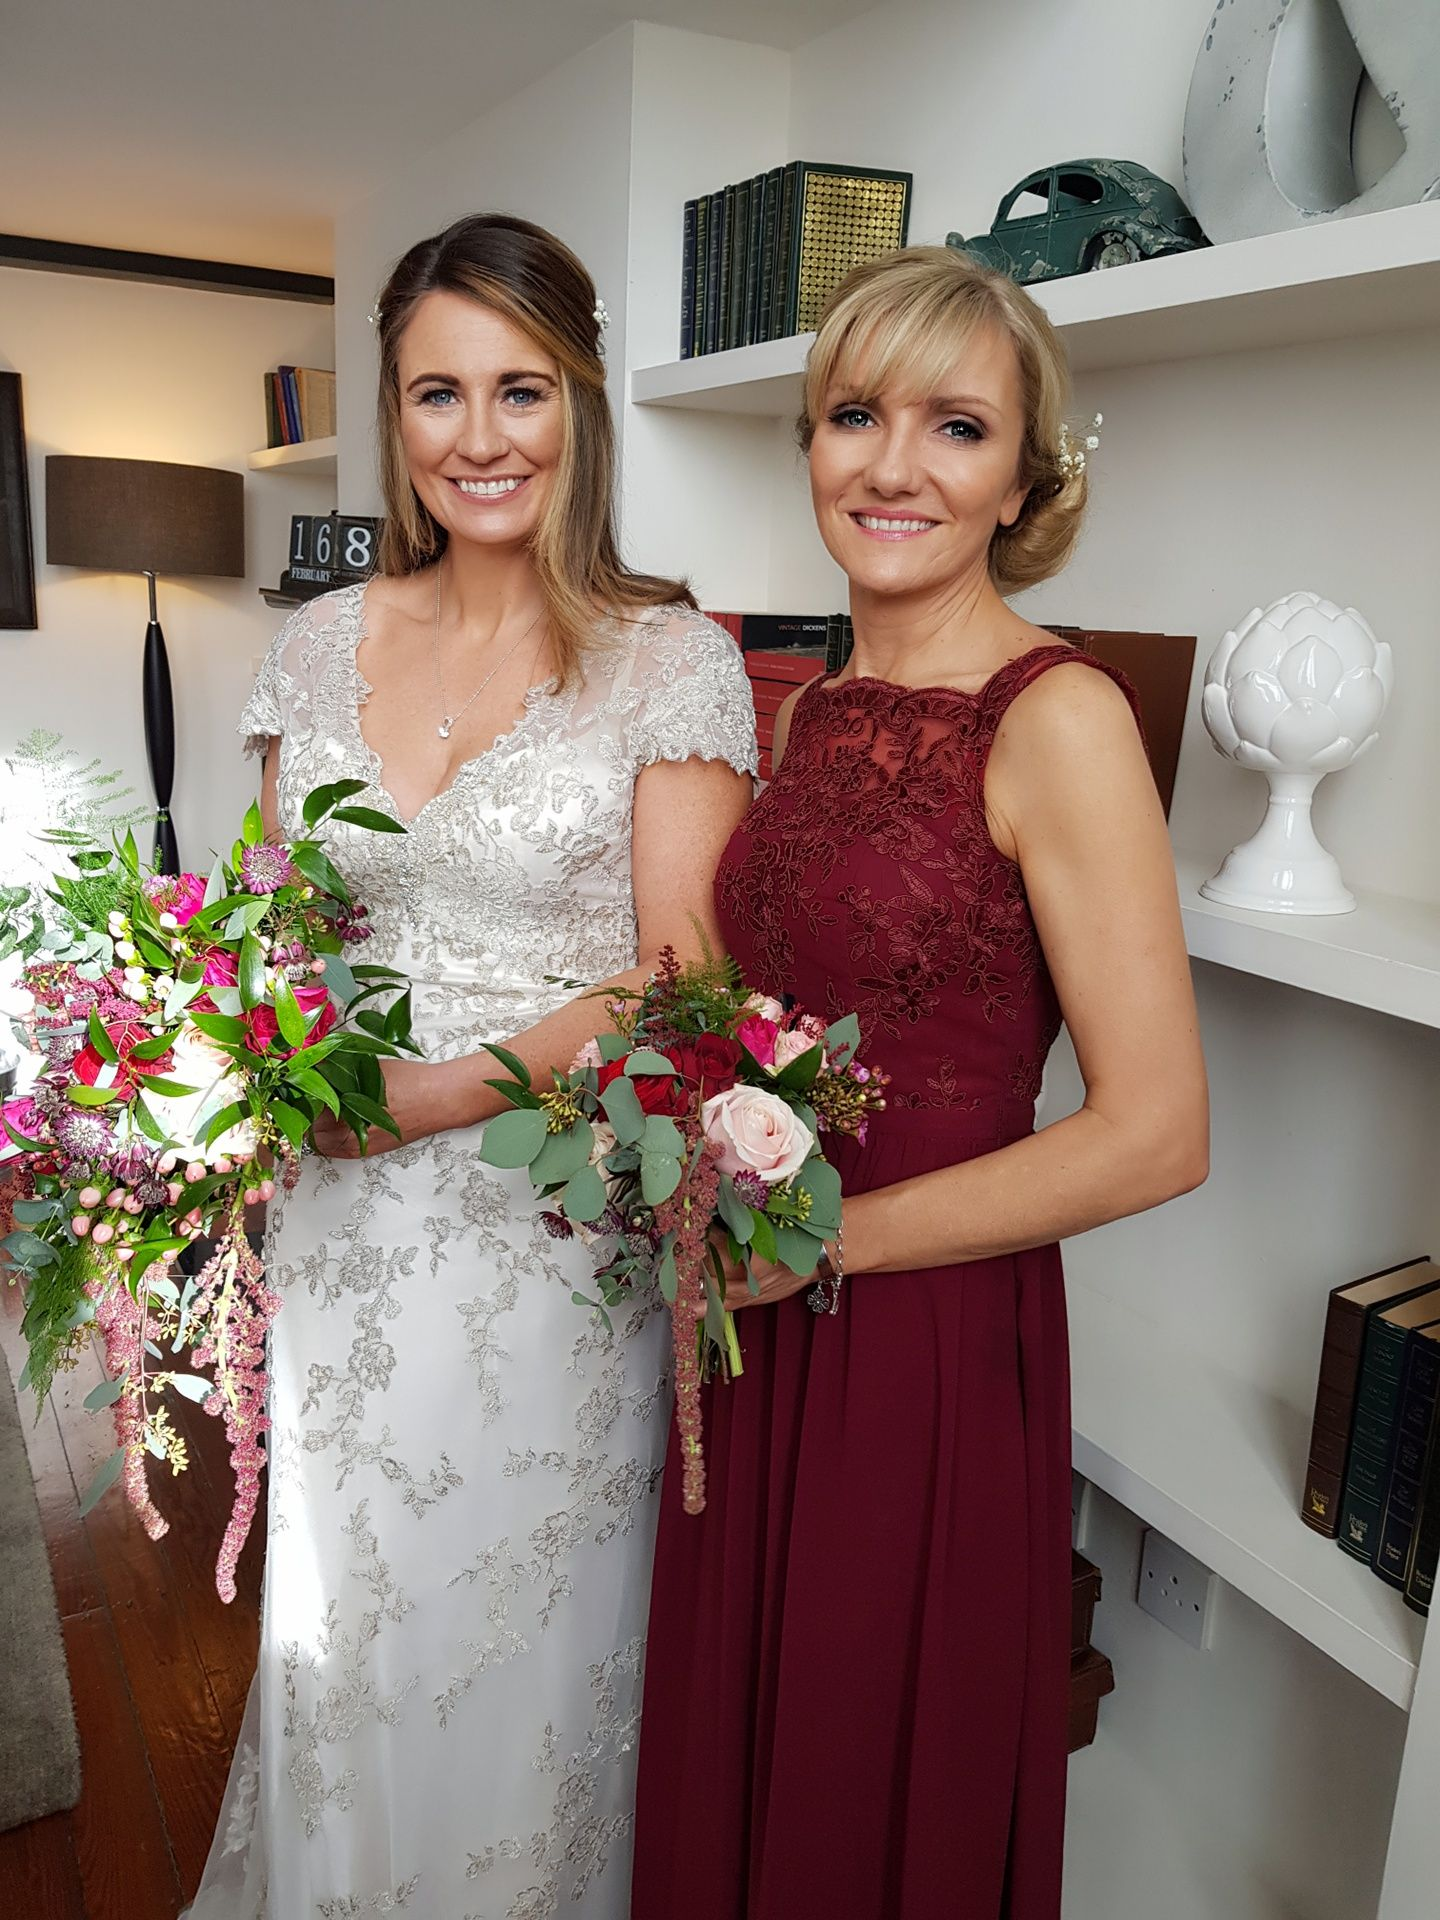 Great John Street Hotel, Manchester, wedding, bride, mature bride, bridesmaid, natural makeup, makeup artist, Manchester makeup artist, Manchester mua, bridal makeup, bridesmaid nmakeup